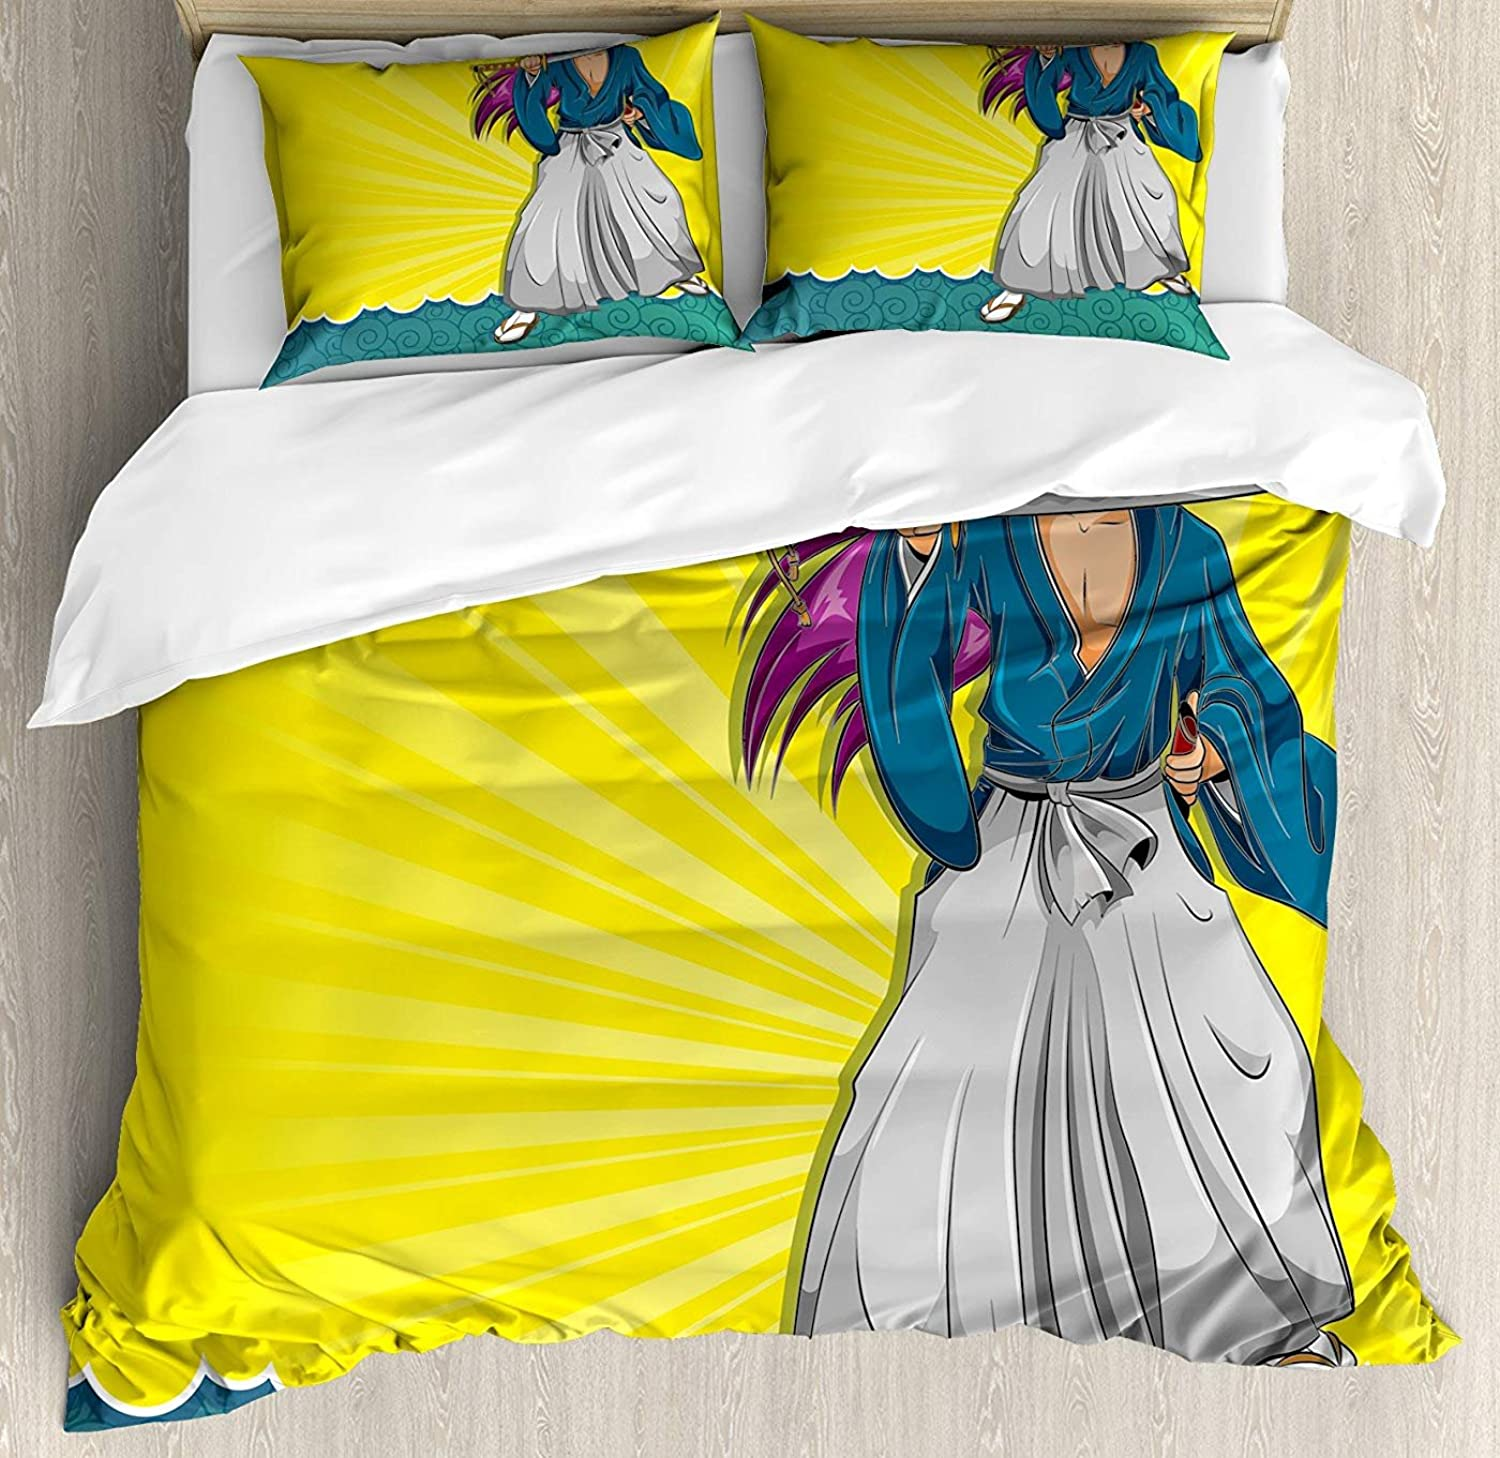 Fandim Fly Anime Twin Size Bedding Set, Manga Style Girl Samurai Warrior Character on Abstract Background in Yellow and bluee,Comforter Cover Sets for All Season, Multicolor